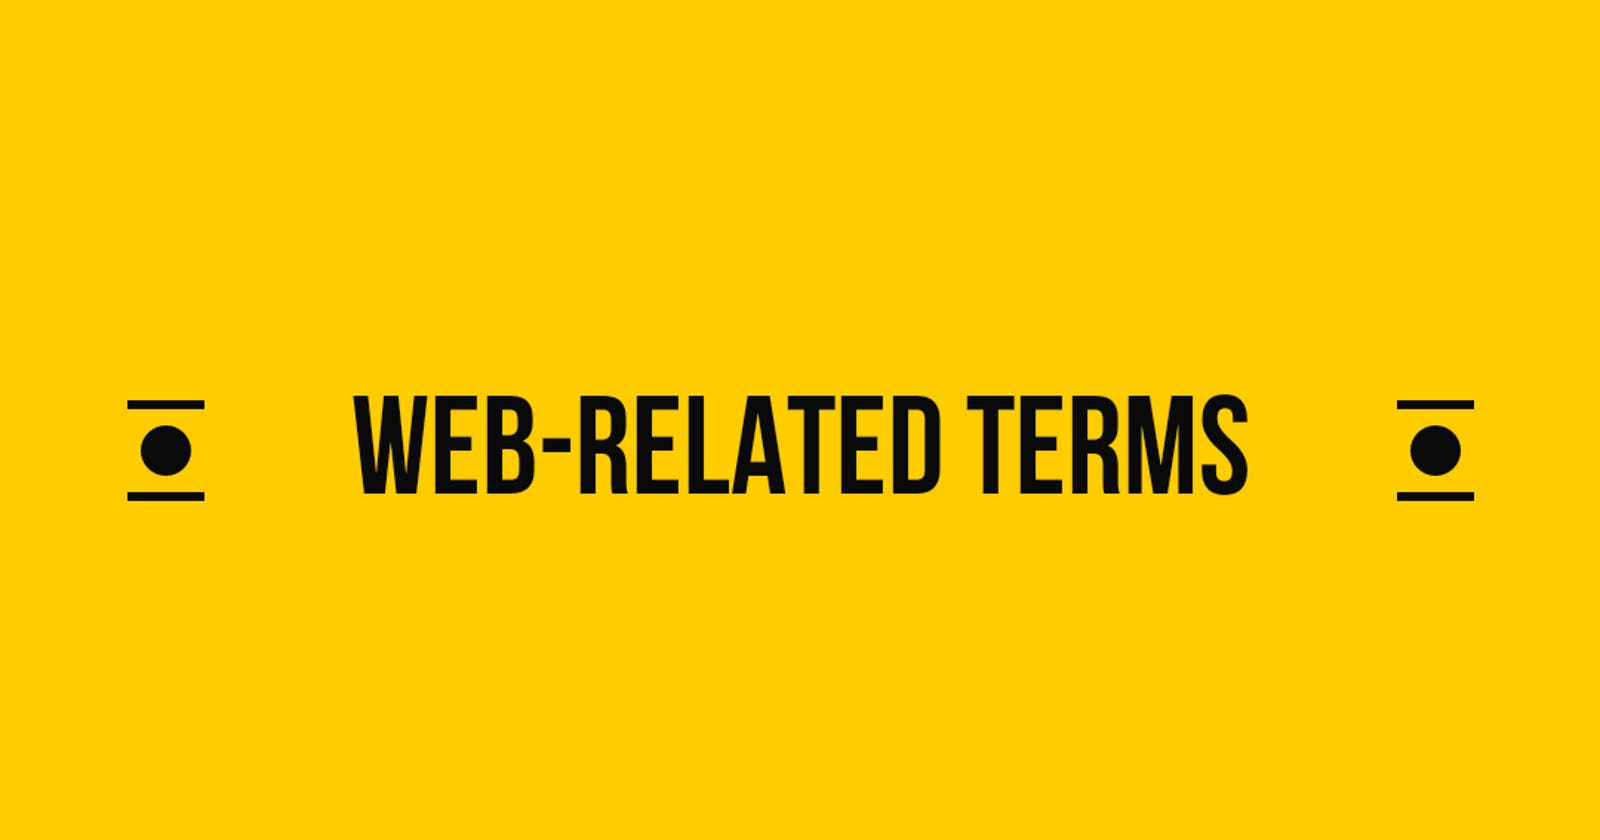 Some Web-Related Terms You Should Know As A Beginner